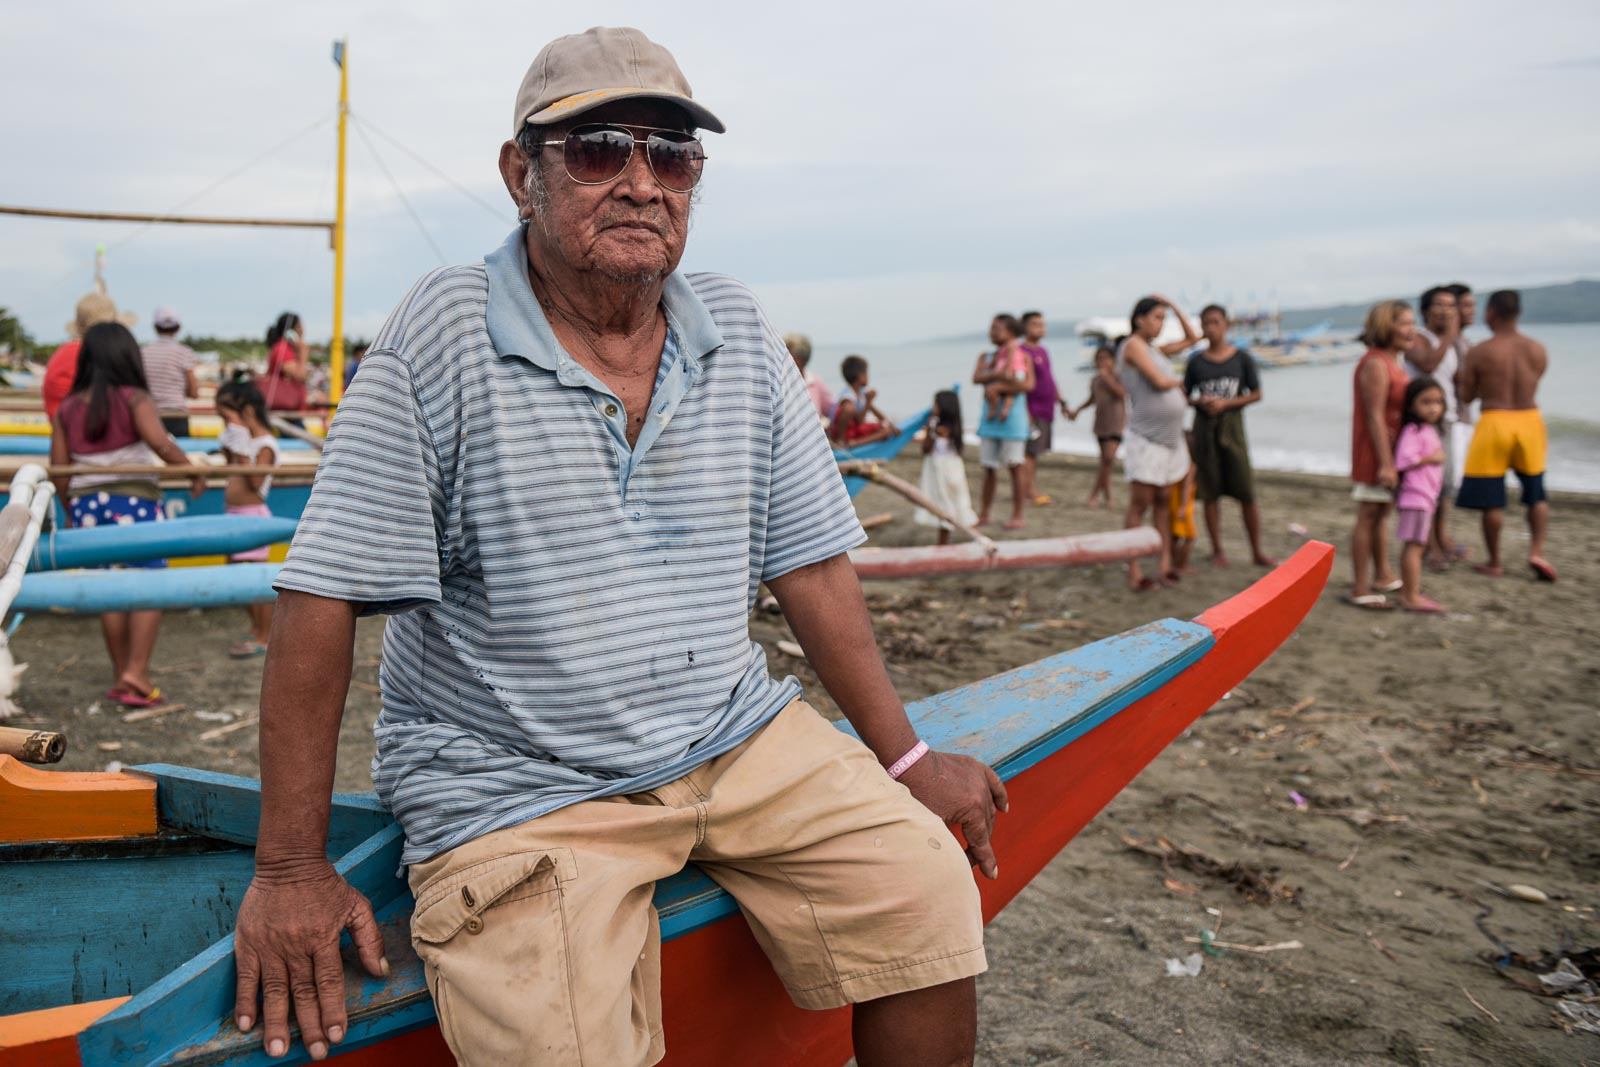 WHAT'S NEXT? Renato Toriana, 77, says illegal fishing is partly to blame for more Filipinos needing to go to Recto Bank (Reed Bank) to fish. Photo by LeAnne Jazul/Rappler